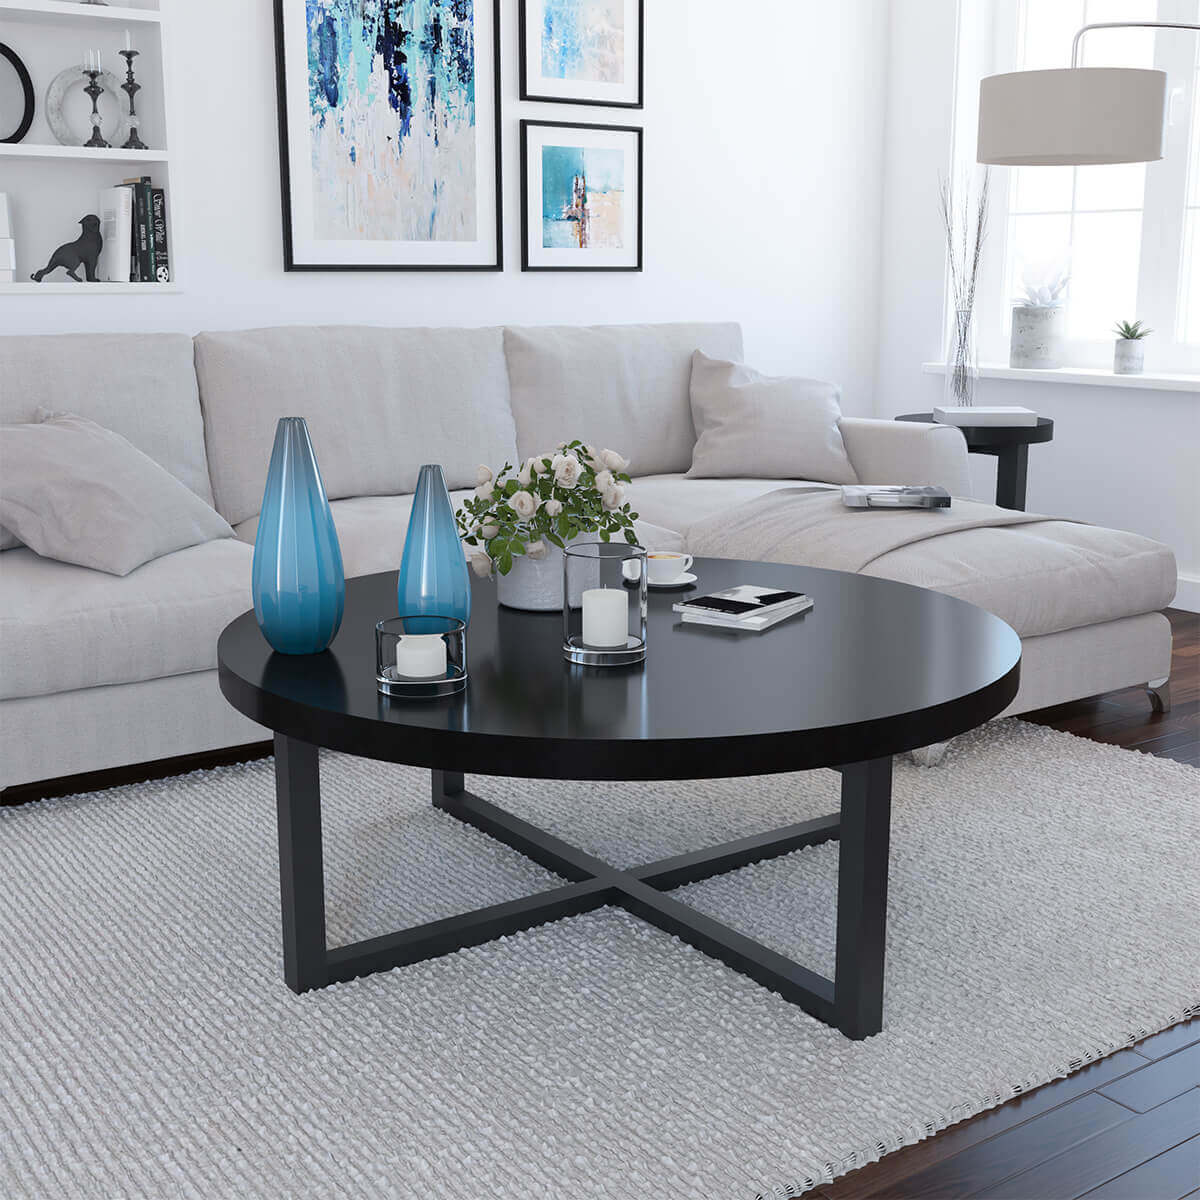 Solid Wood Curved Coffee Table: Traicere Contemporary Rustic Solid Wood Cross Base Round